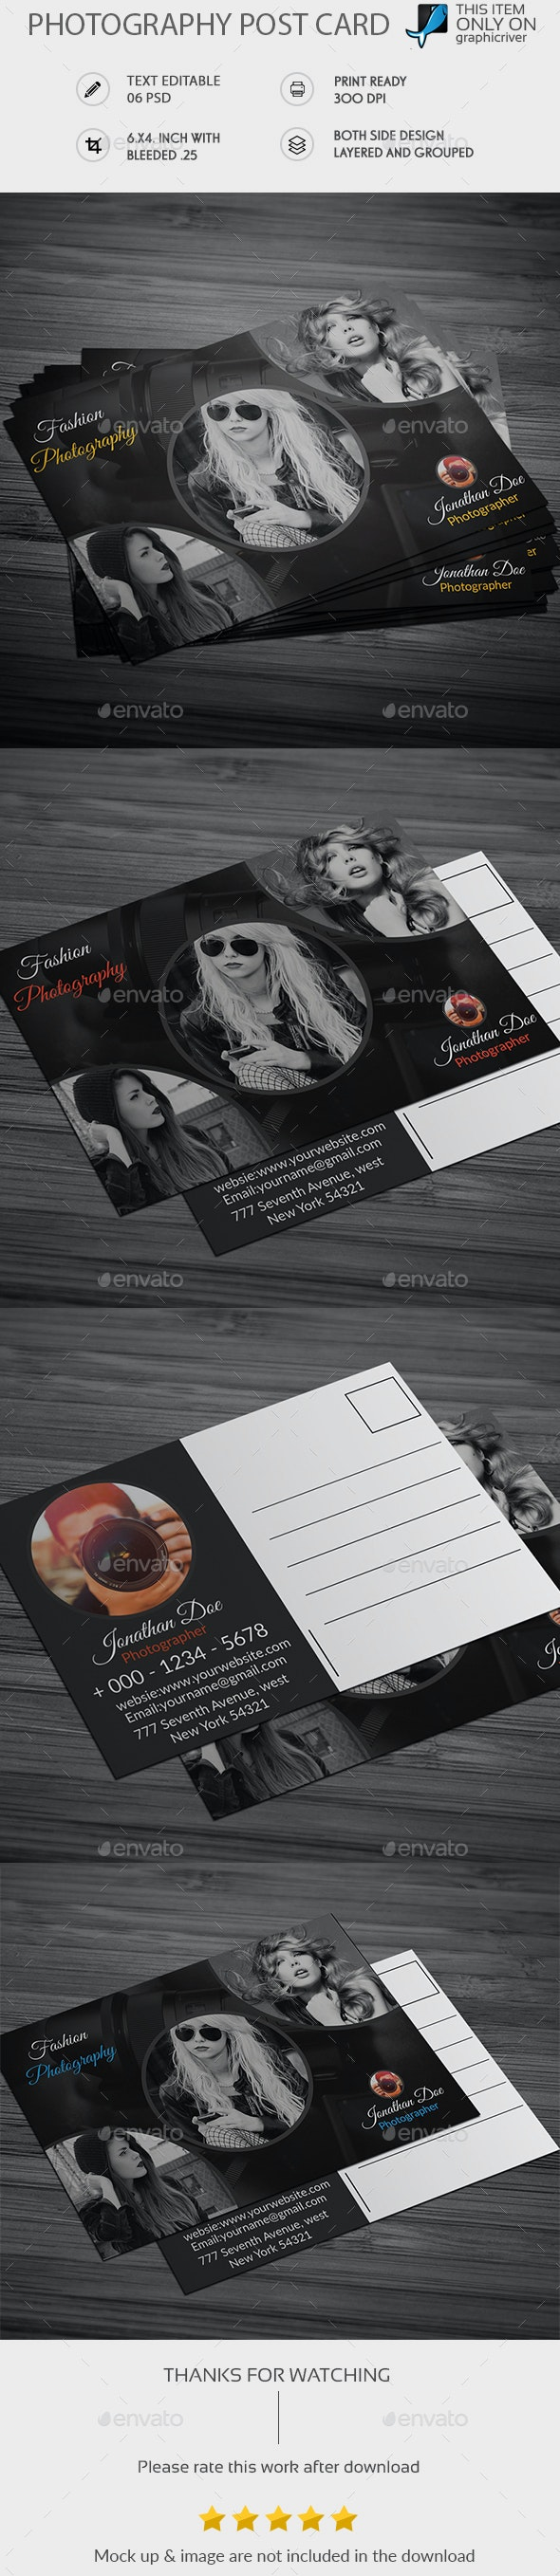 Photography Post Card - Cards & Invites Print Templates